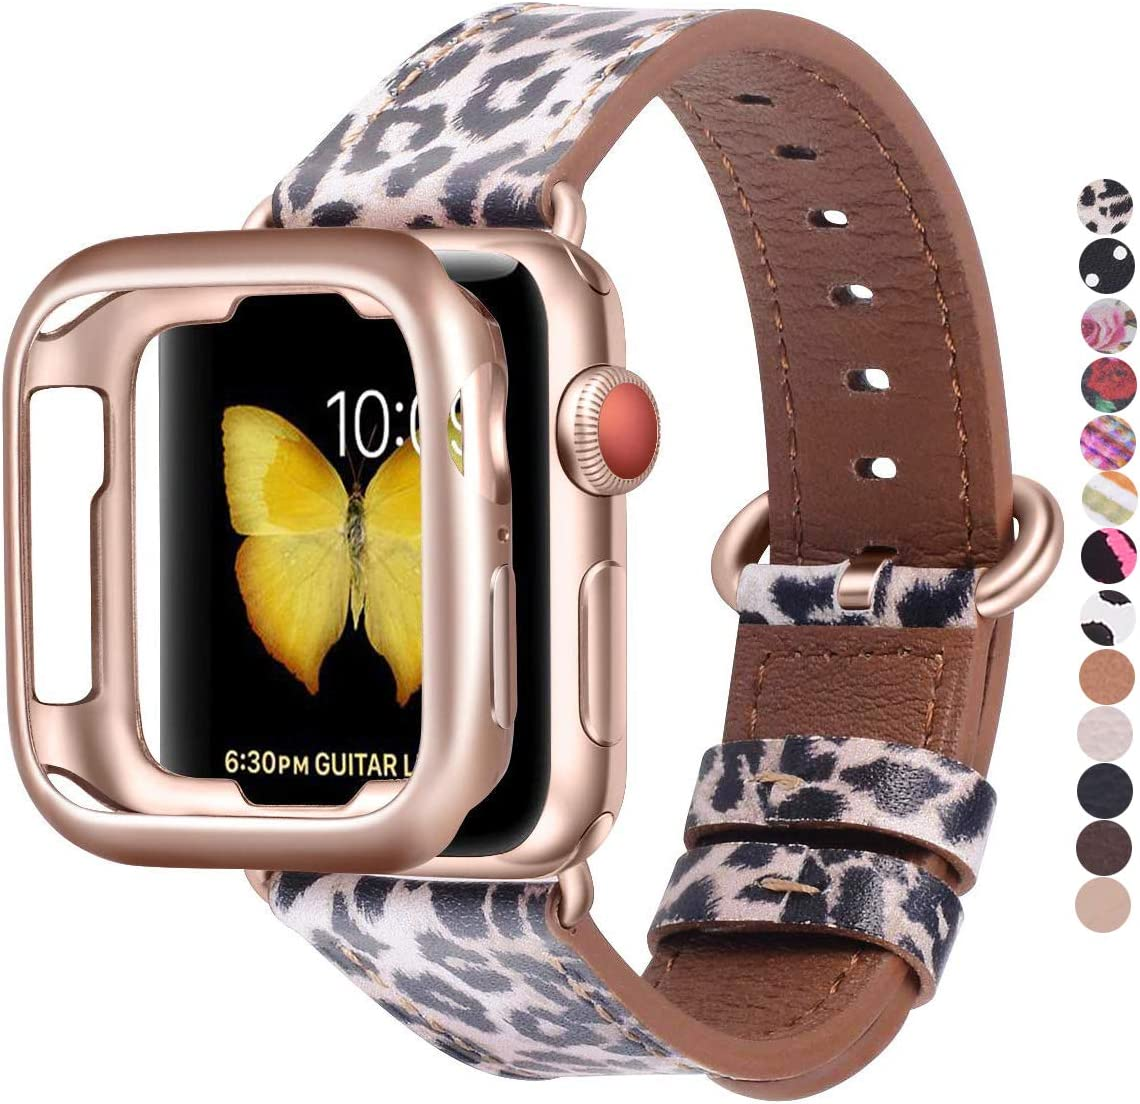 JSGJMY Compatible with Apple Watch Band 38mm 40mm with Case,M/L Women Genuine Leather with Rose Gold Adapter and Buckle(Match the SE/Series 6/5/4/3 Gold Aluminum) for iwatch Series 6/5/4/3/2/1, Leopard